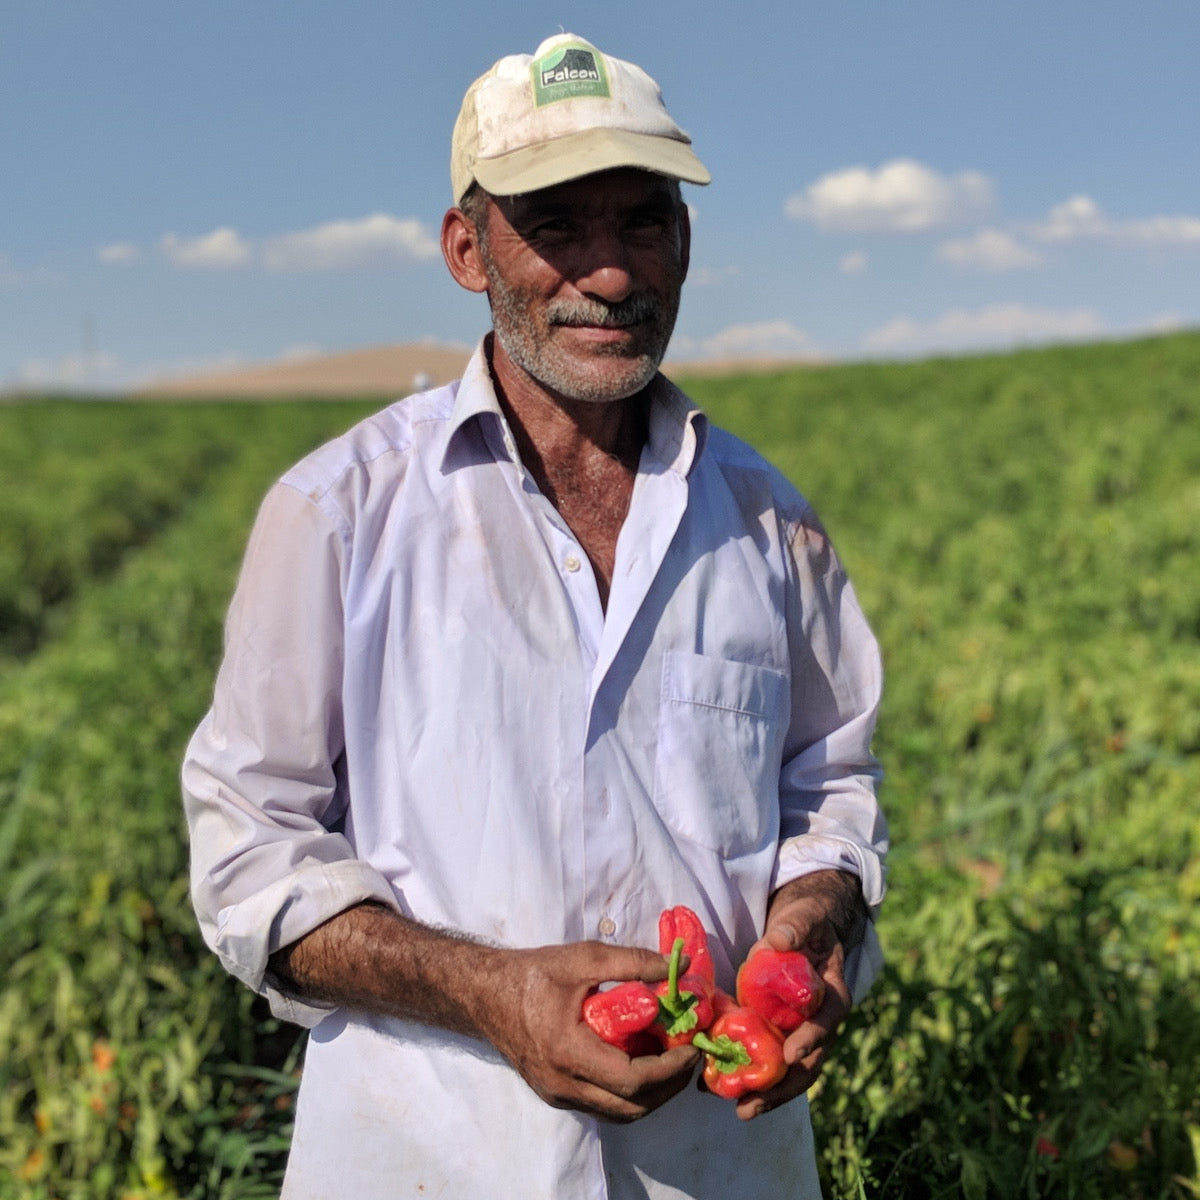 A chilis farmer in Tukry holding his peppers in a field.